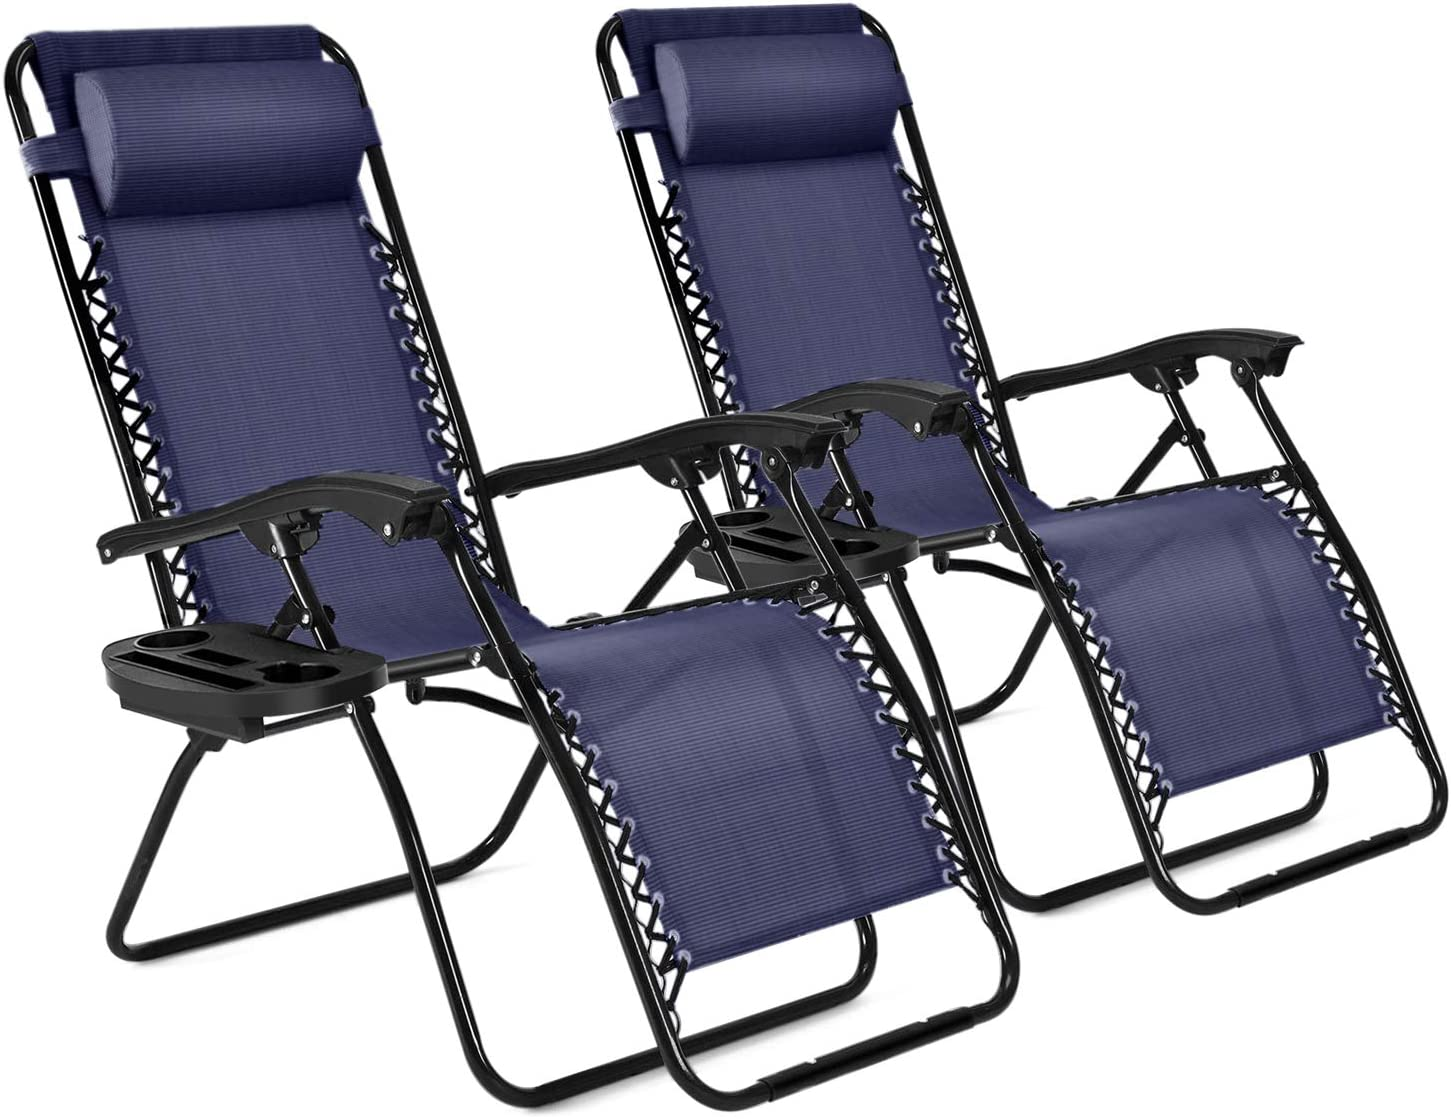 Flexzion Zero Gravity Patio Lounge Chairs Recliners Set of 2 Pack (Blue) Reclining Folding Chaise Sun Loungers with Removable Padded Pillow Headrest & Cup Holder Tray, Max Weight 265 Lbs for Outdoor